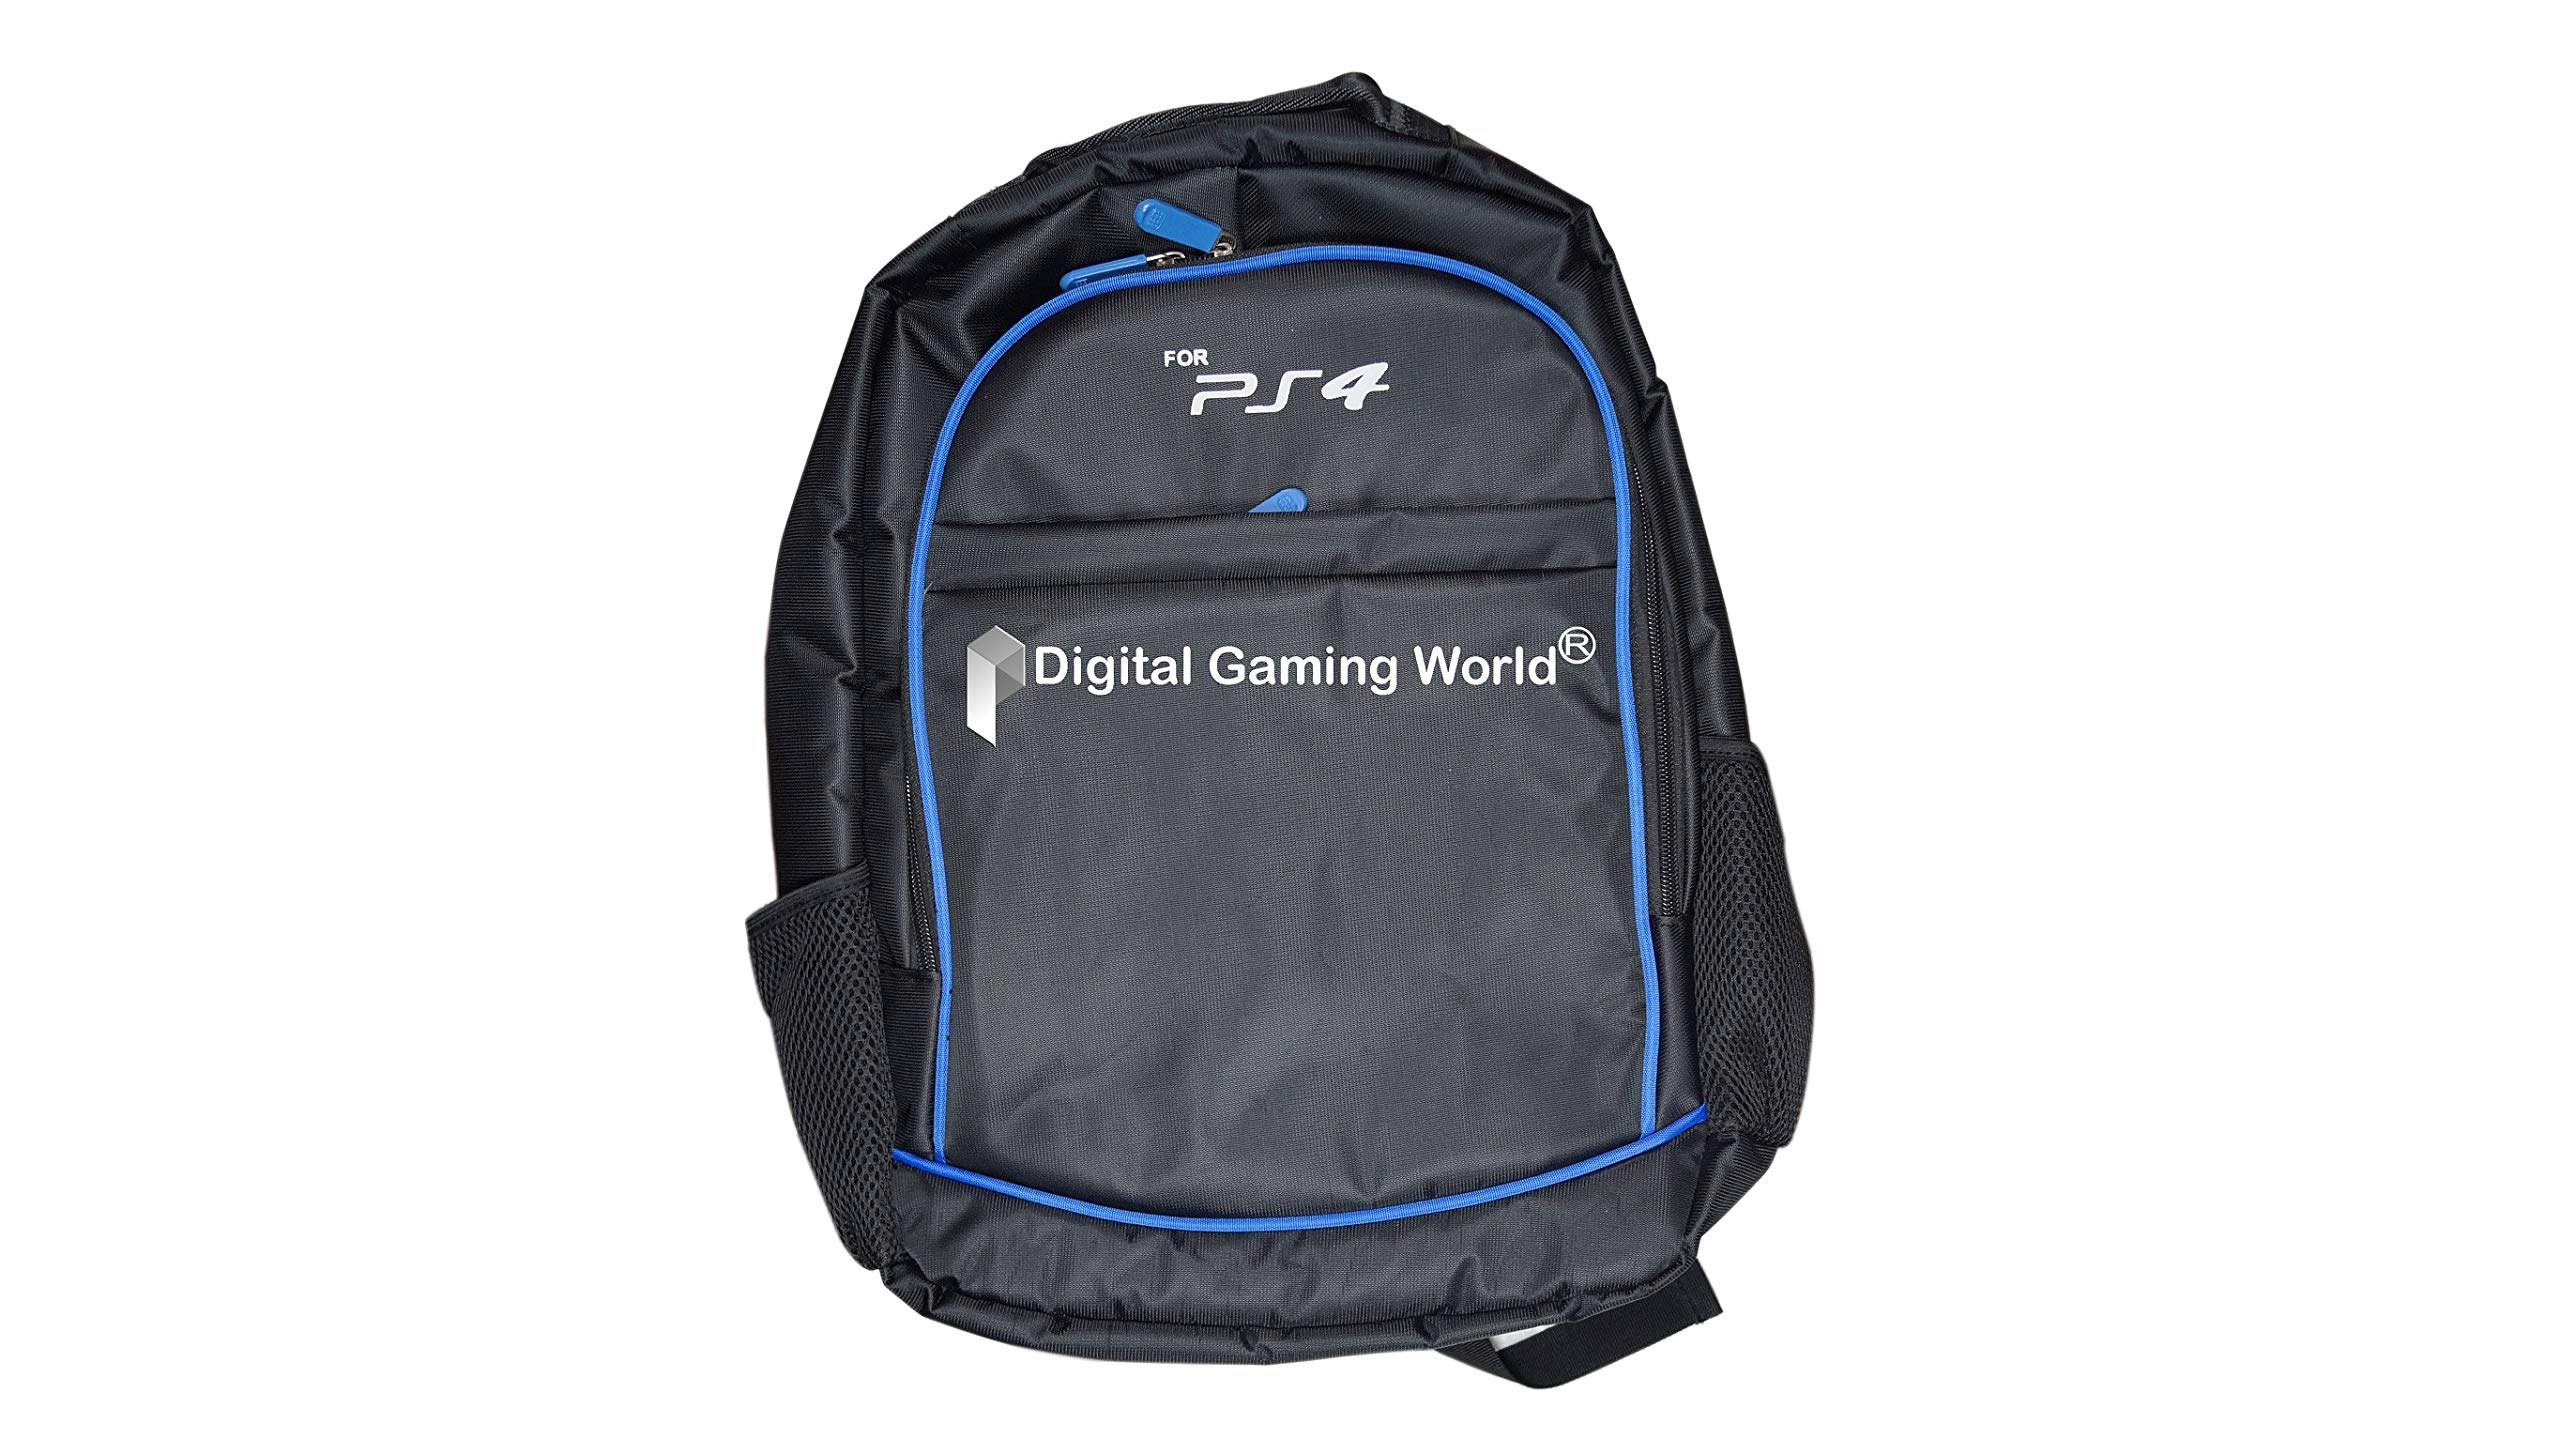 Amazon price history for Digital Gaming World® New Design Travel Back Pack Carry Bag for PS4, PS4 PRO and PS3 Super Slim Consoles (Console not included)